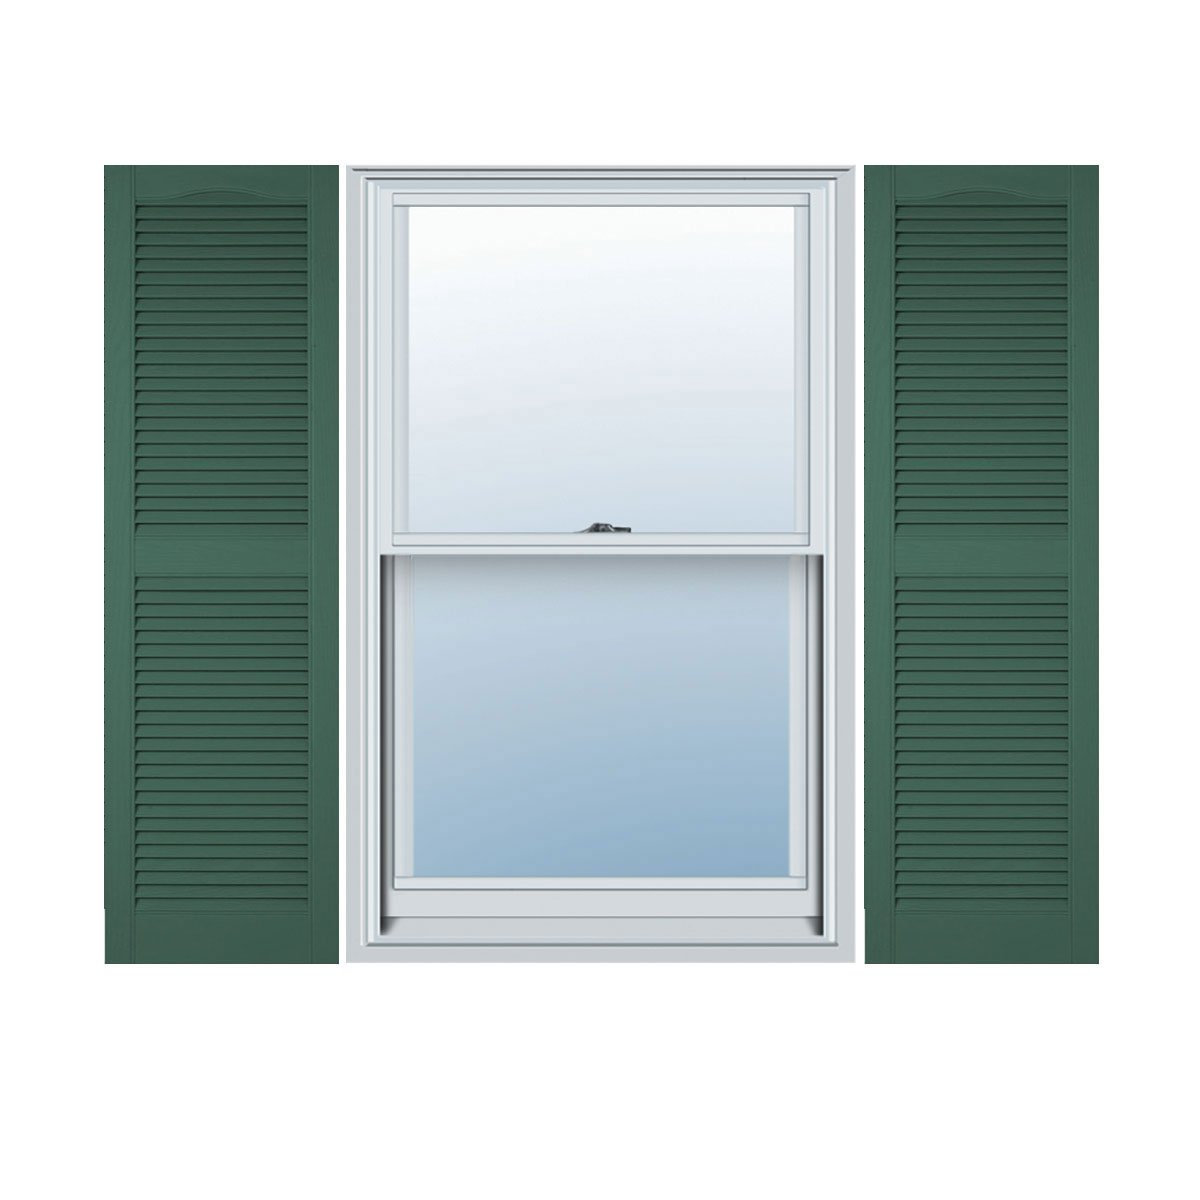 Ekena Millwork LL1S12X04300FG Lifetime Vinyl, Standard Cathedral Top Center Mullion, Open Louver Shutters, w/Installation Shutter-Lok's & Matching Screws (Per Pair), 12'' W x 43'' H, Forest Green